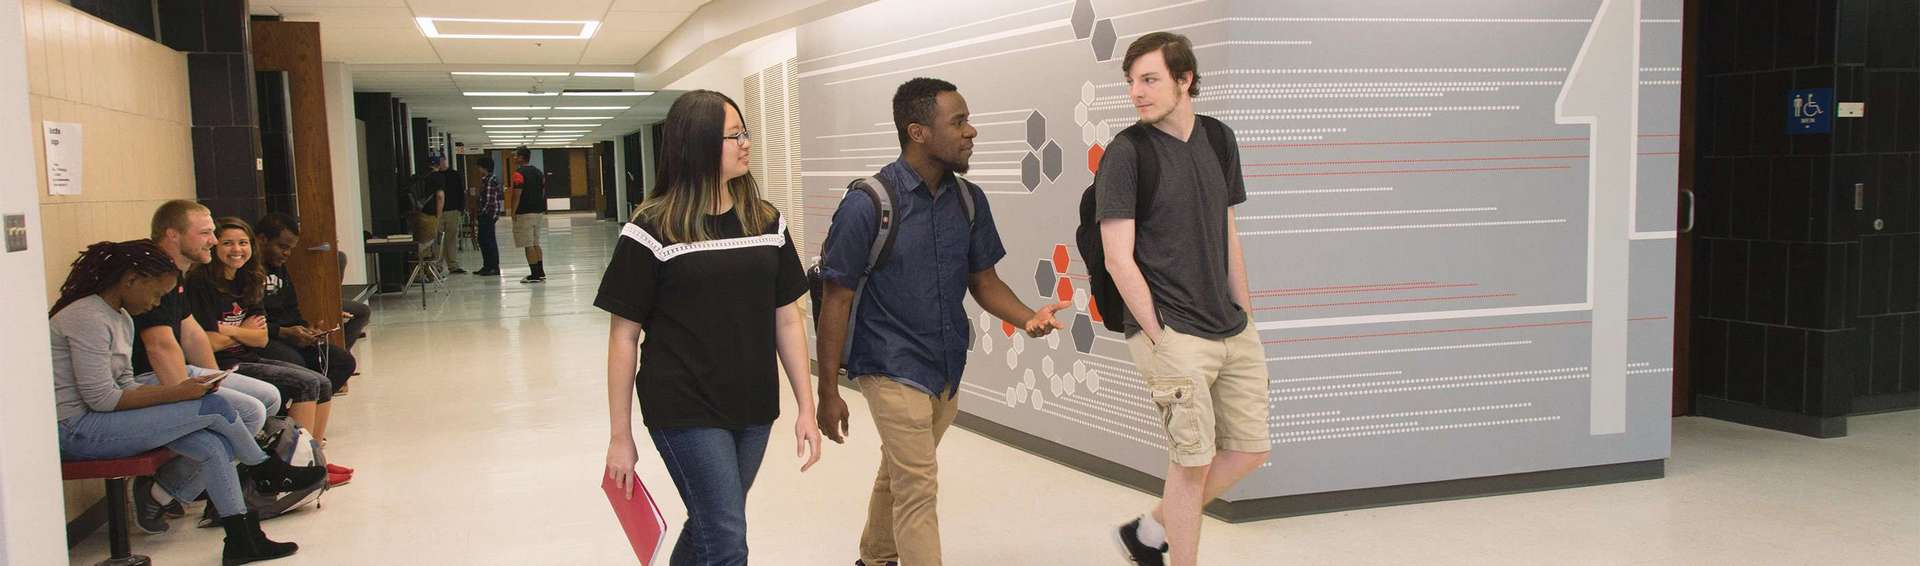 students walking in hall of W. C. Morris